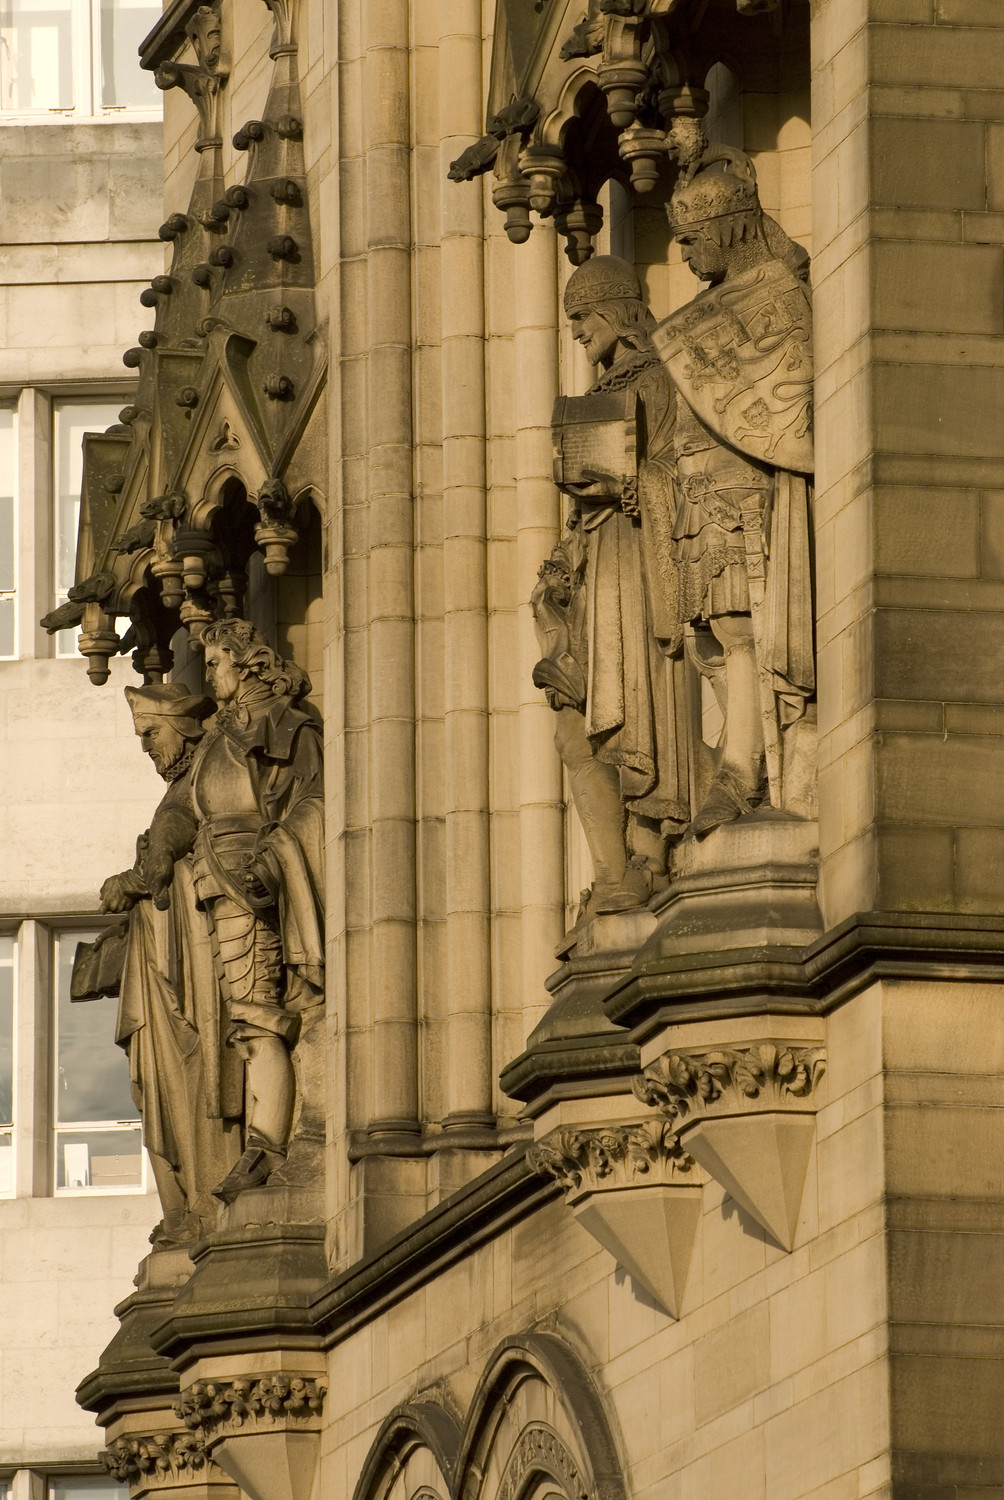 Manchester Town Hall statues